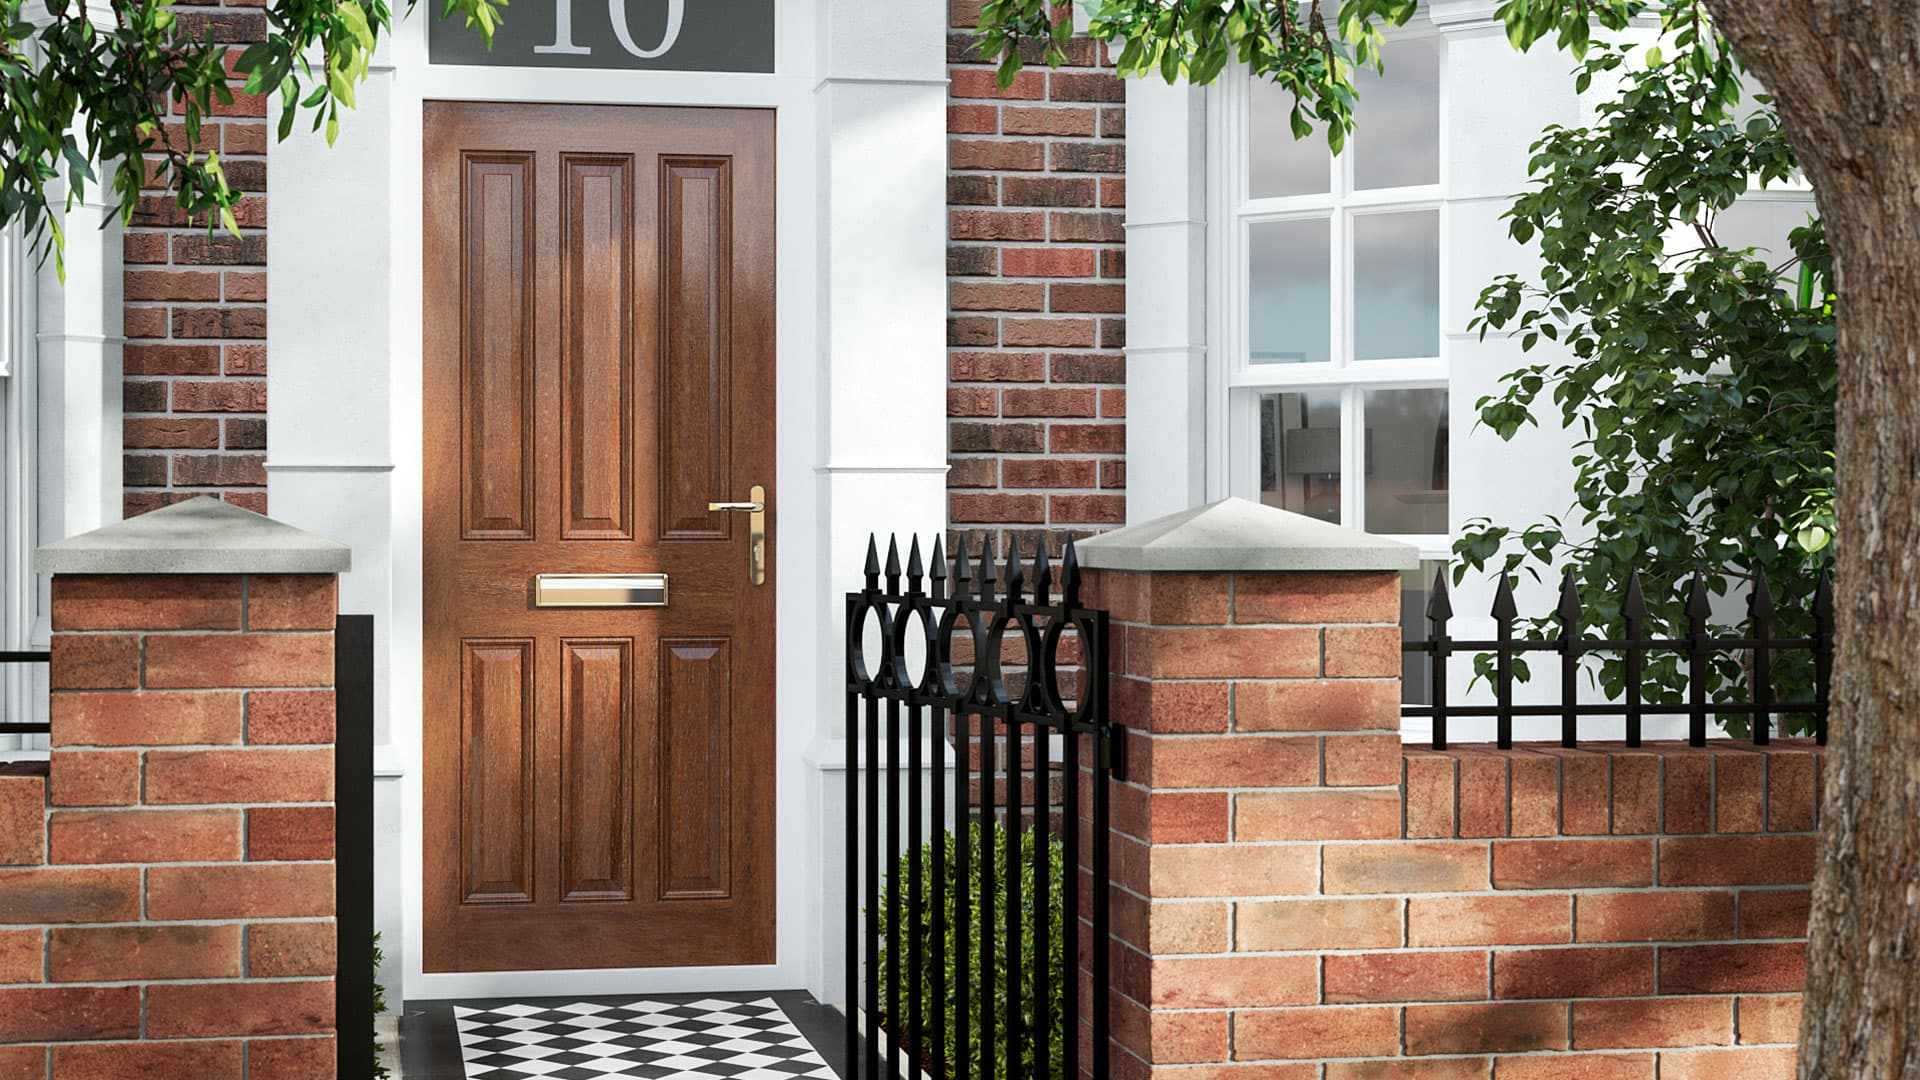 Wooden Doors | Solid Wood Timber Front Doors With Glass For Sale | Everest